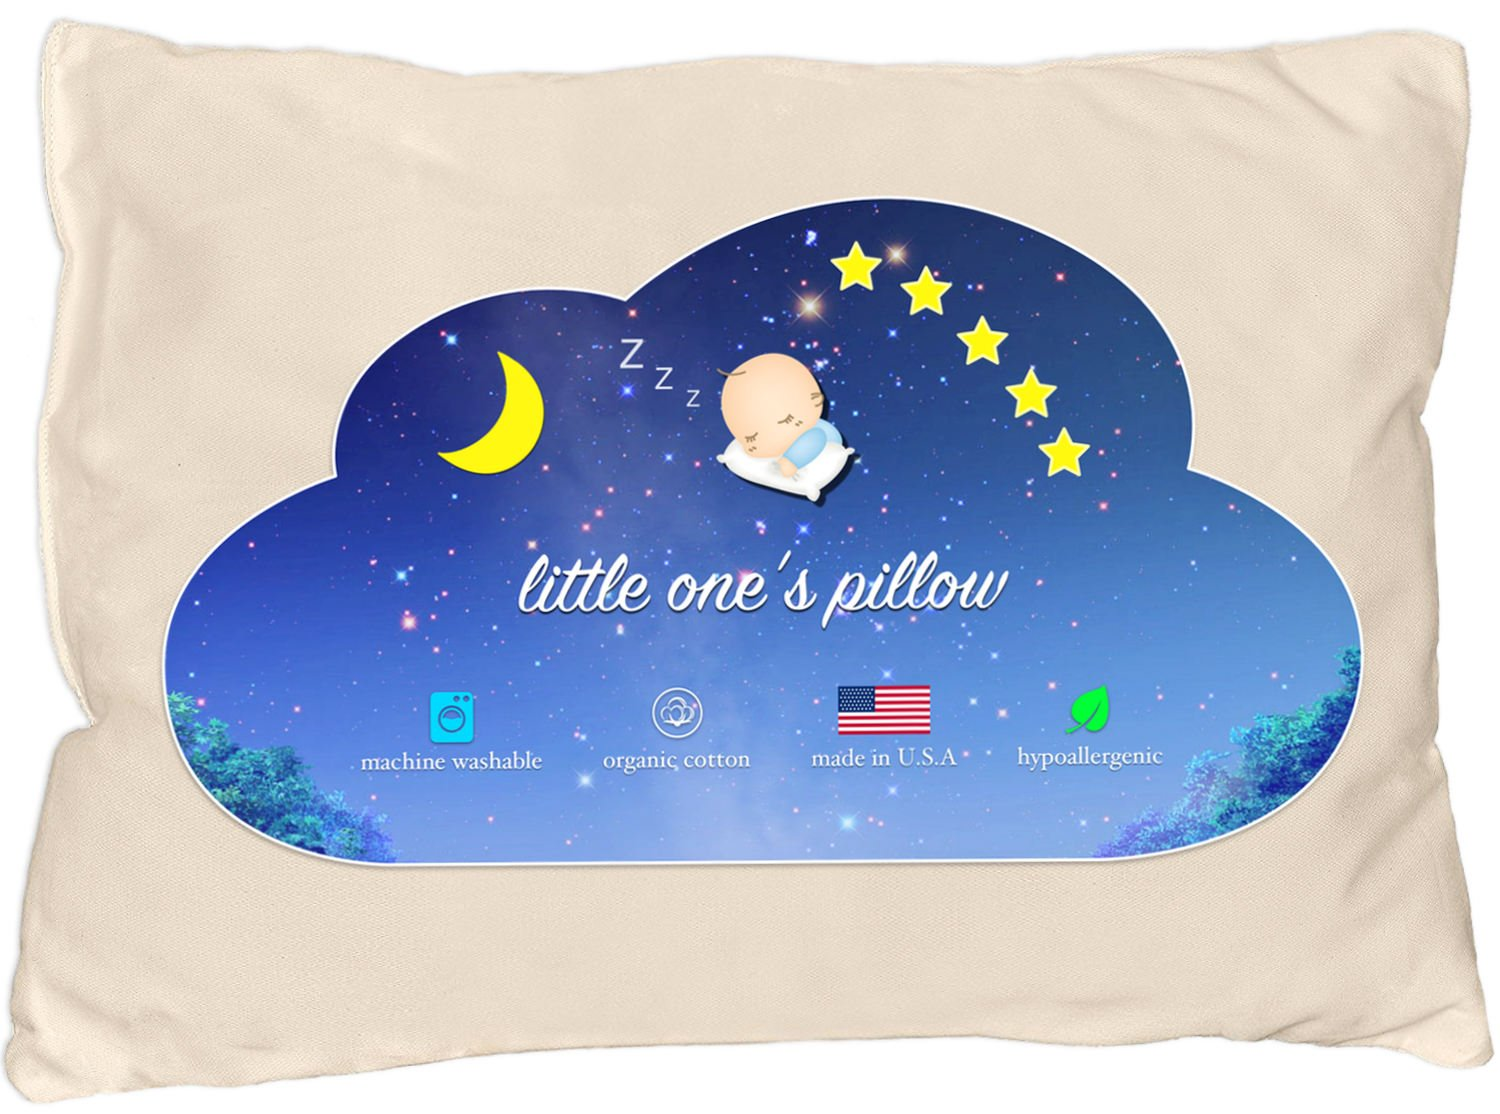 little oneu0027s pillow toddler pillow delicate organic cotton shell handcrafted in usa